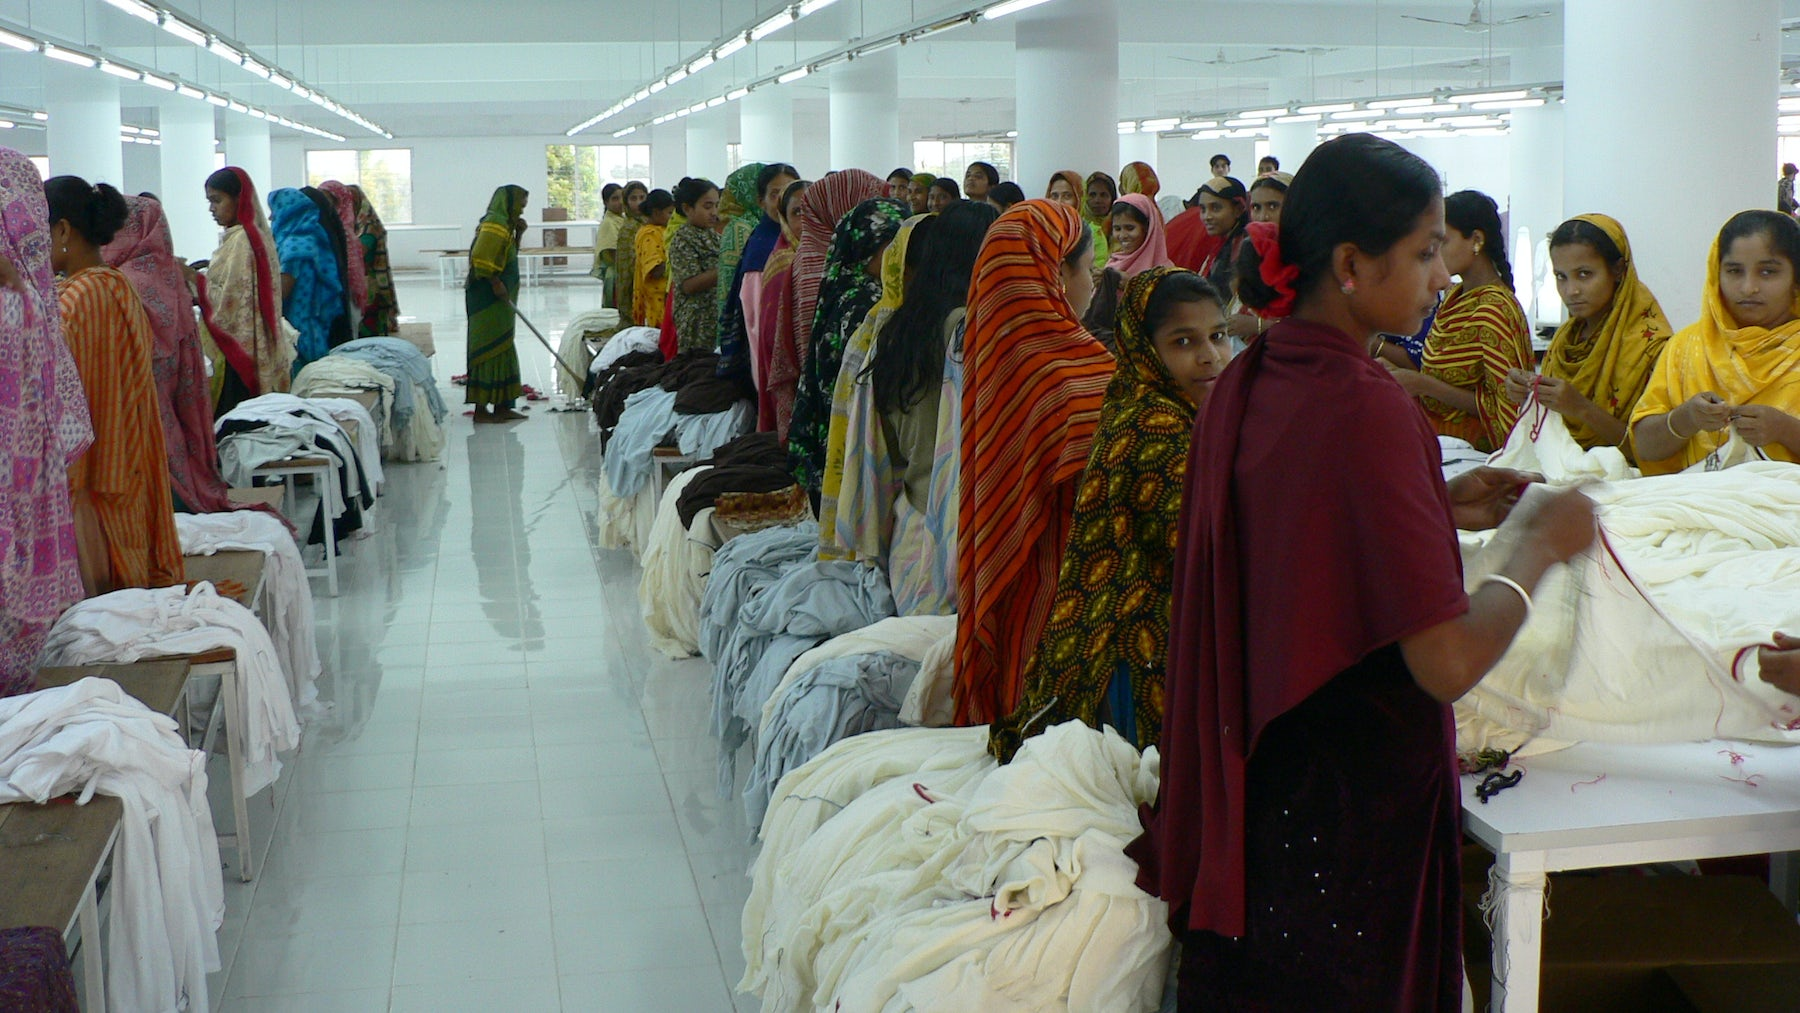 Textile Factory Workers in Dhaka | Source: Shutterstock